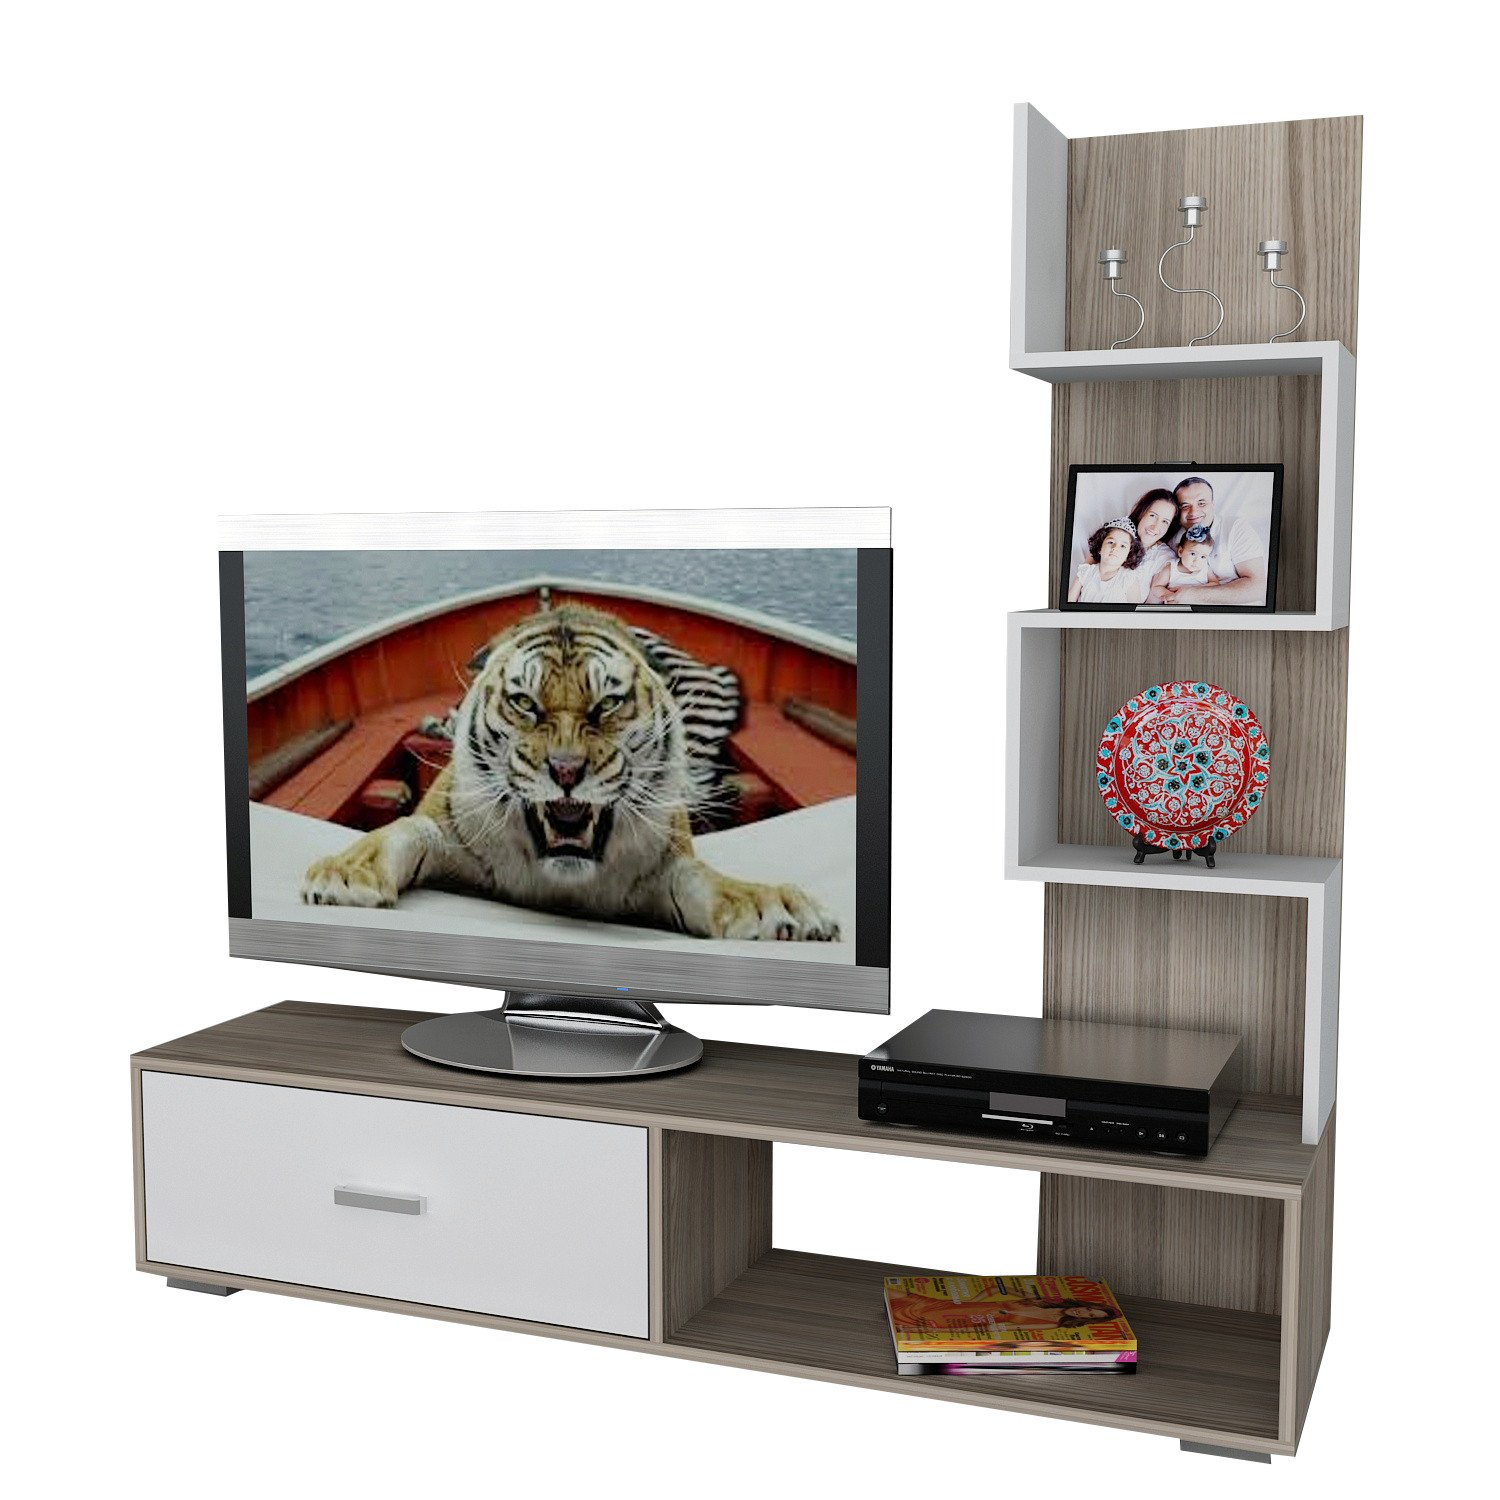 Akay Asir Group Llc Wooden Art Gerat Tv Cordoba Weiss Amazon Fr  # Meuble Tv Wooden Art